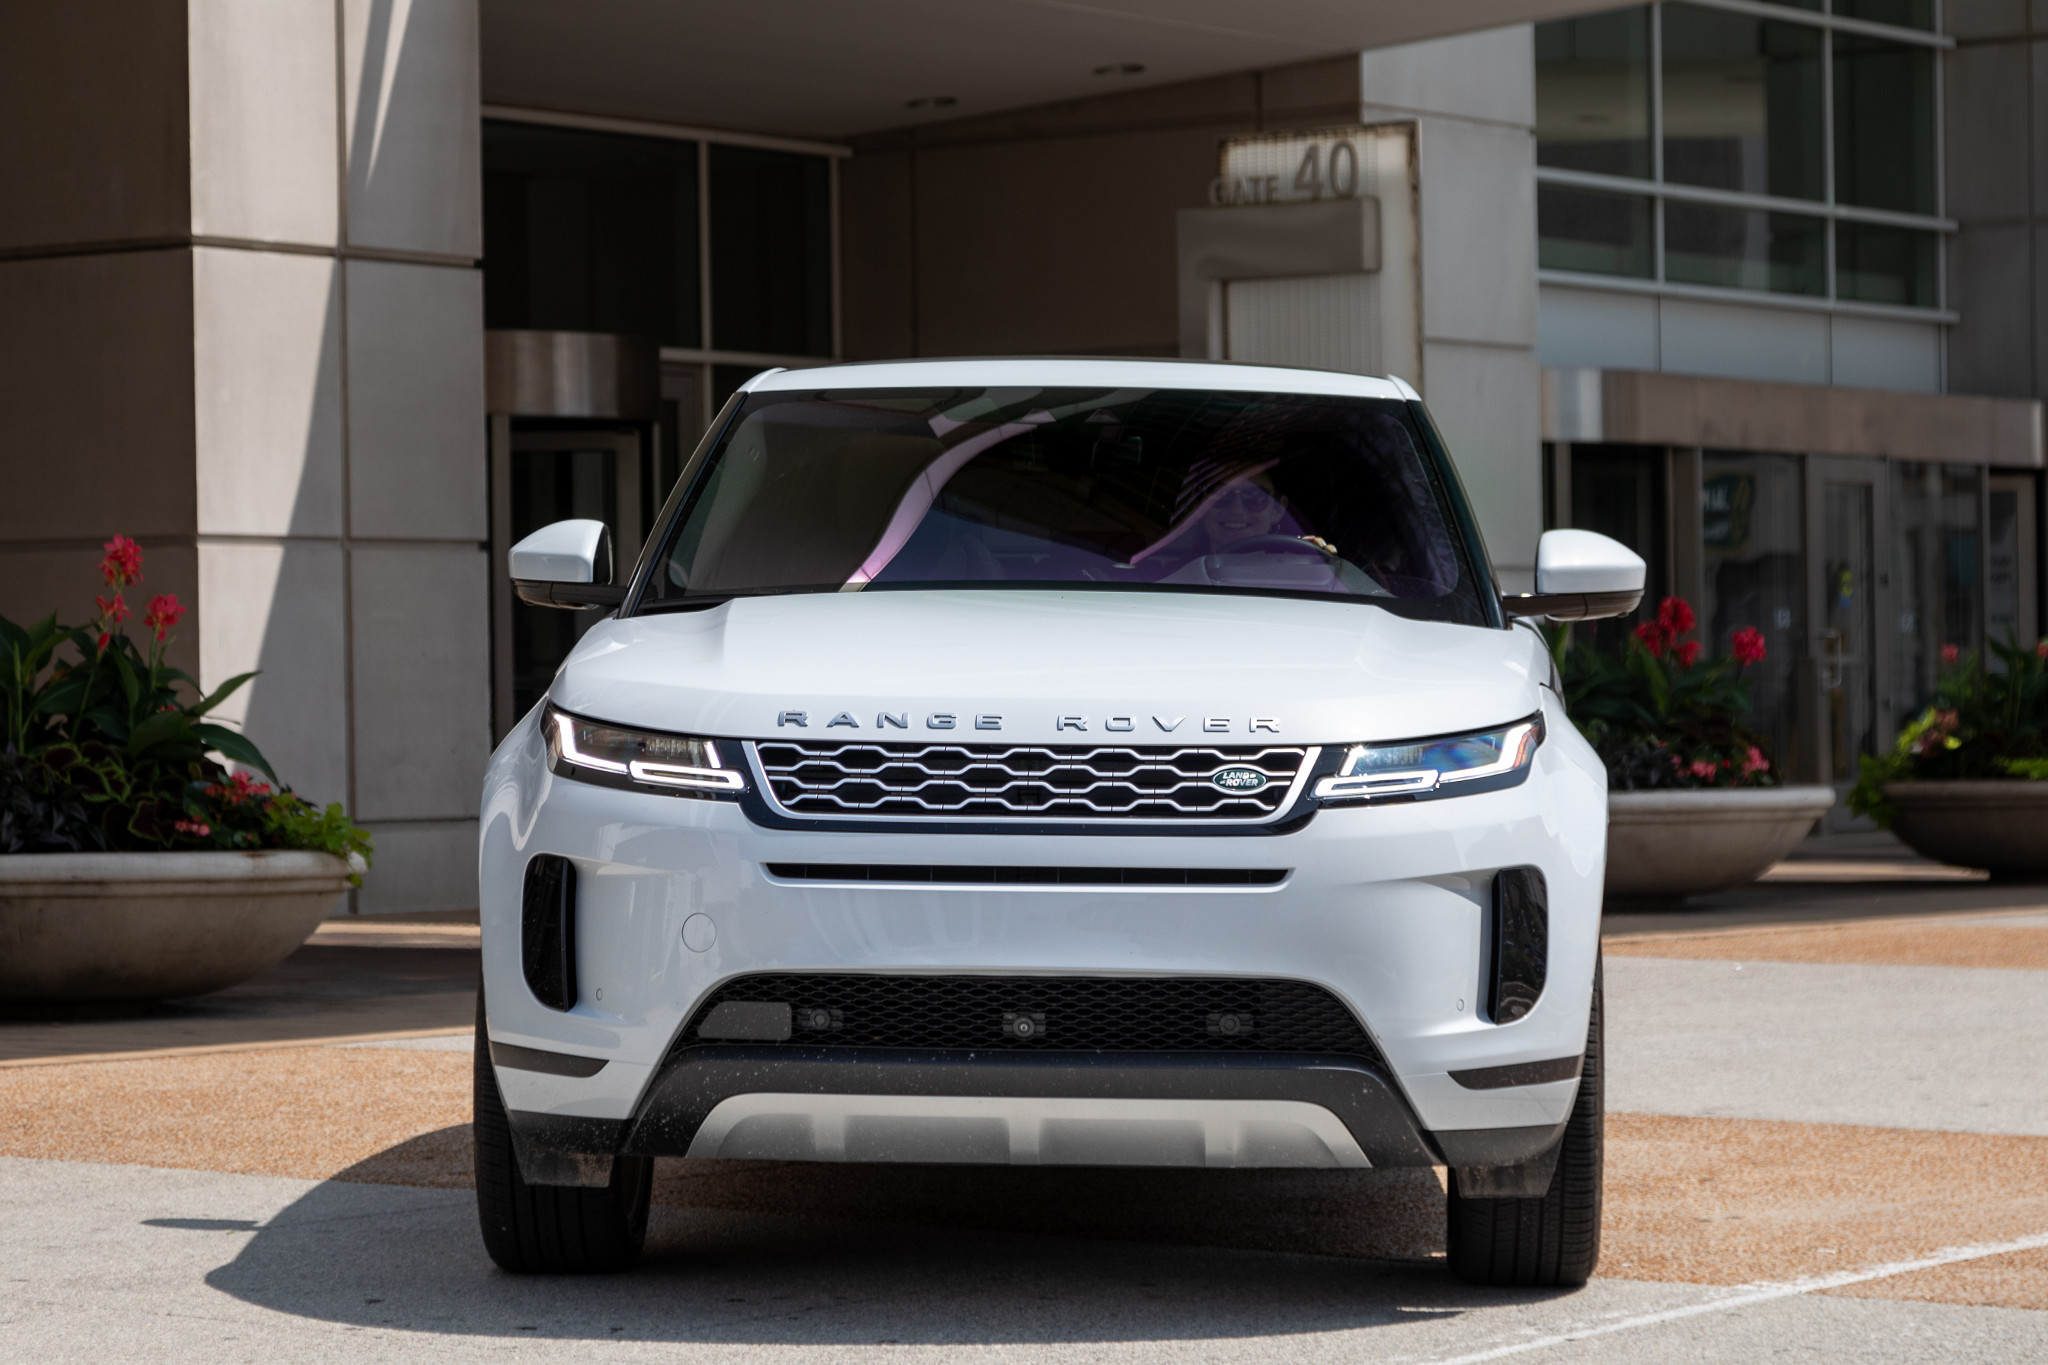 2020 Land Rover Range Rover Evoque: Everything You Need to Know